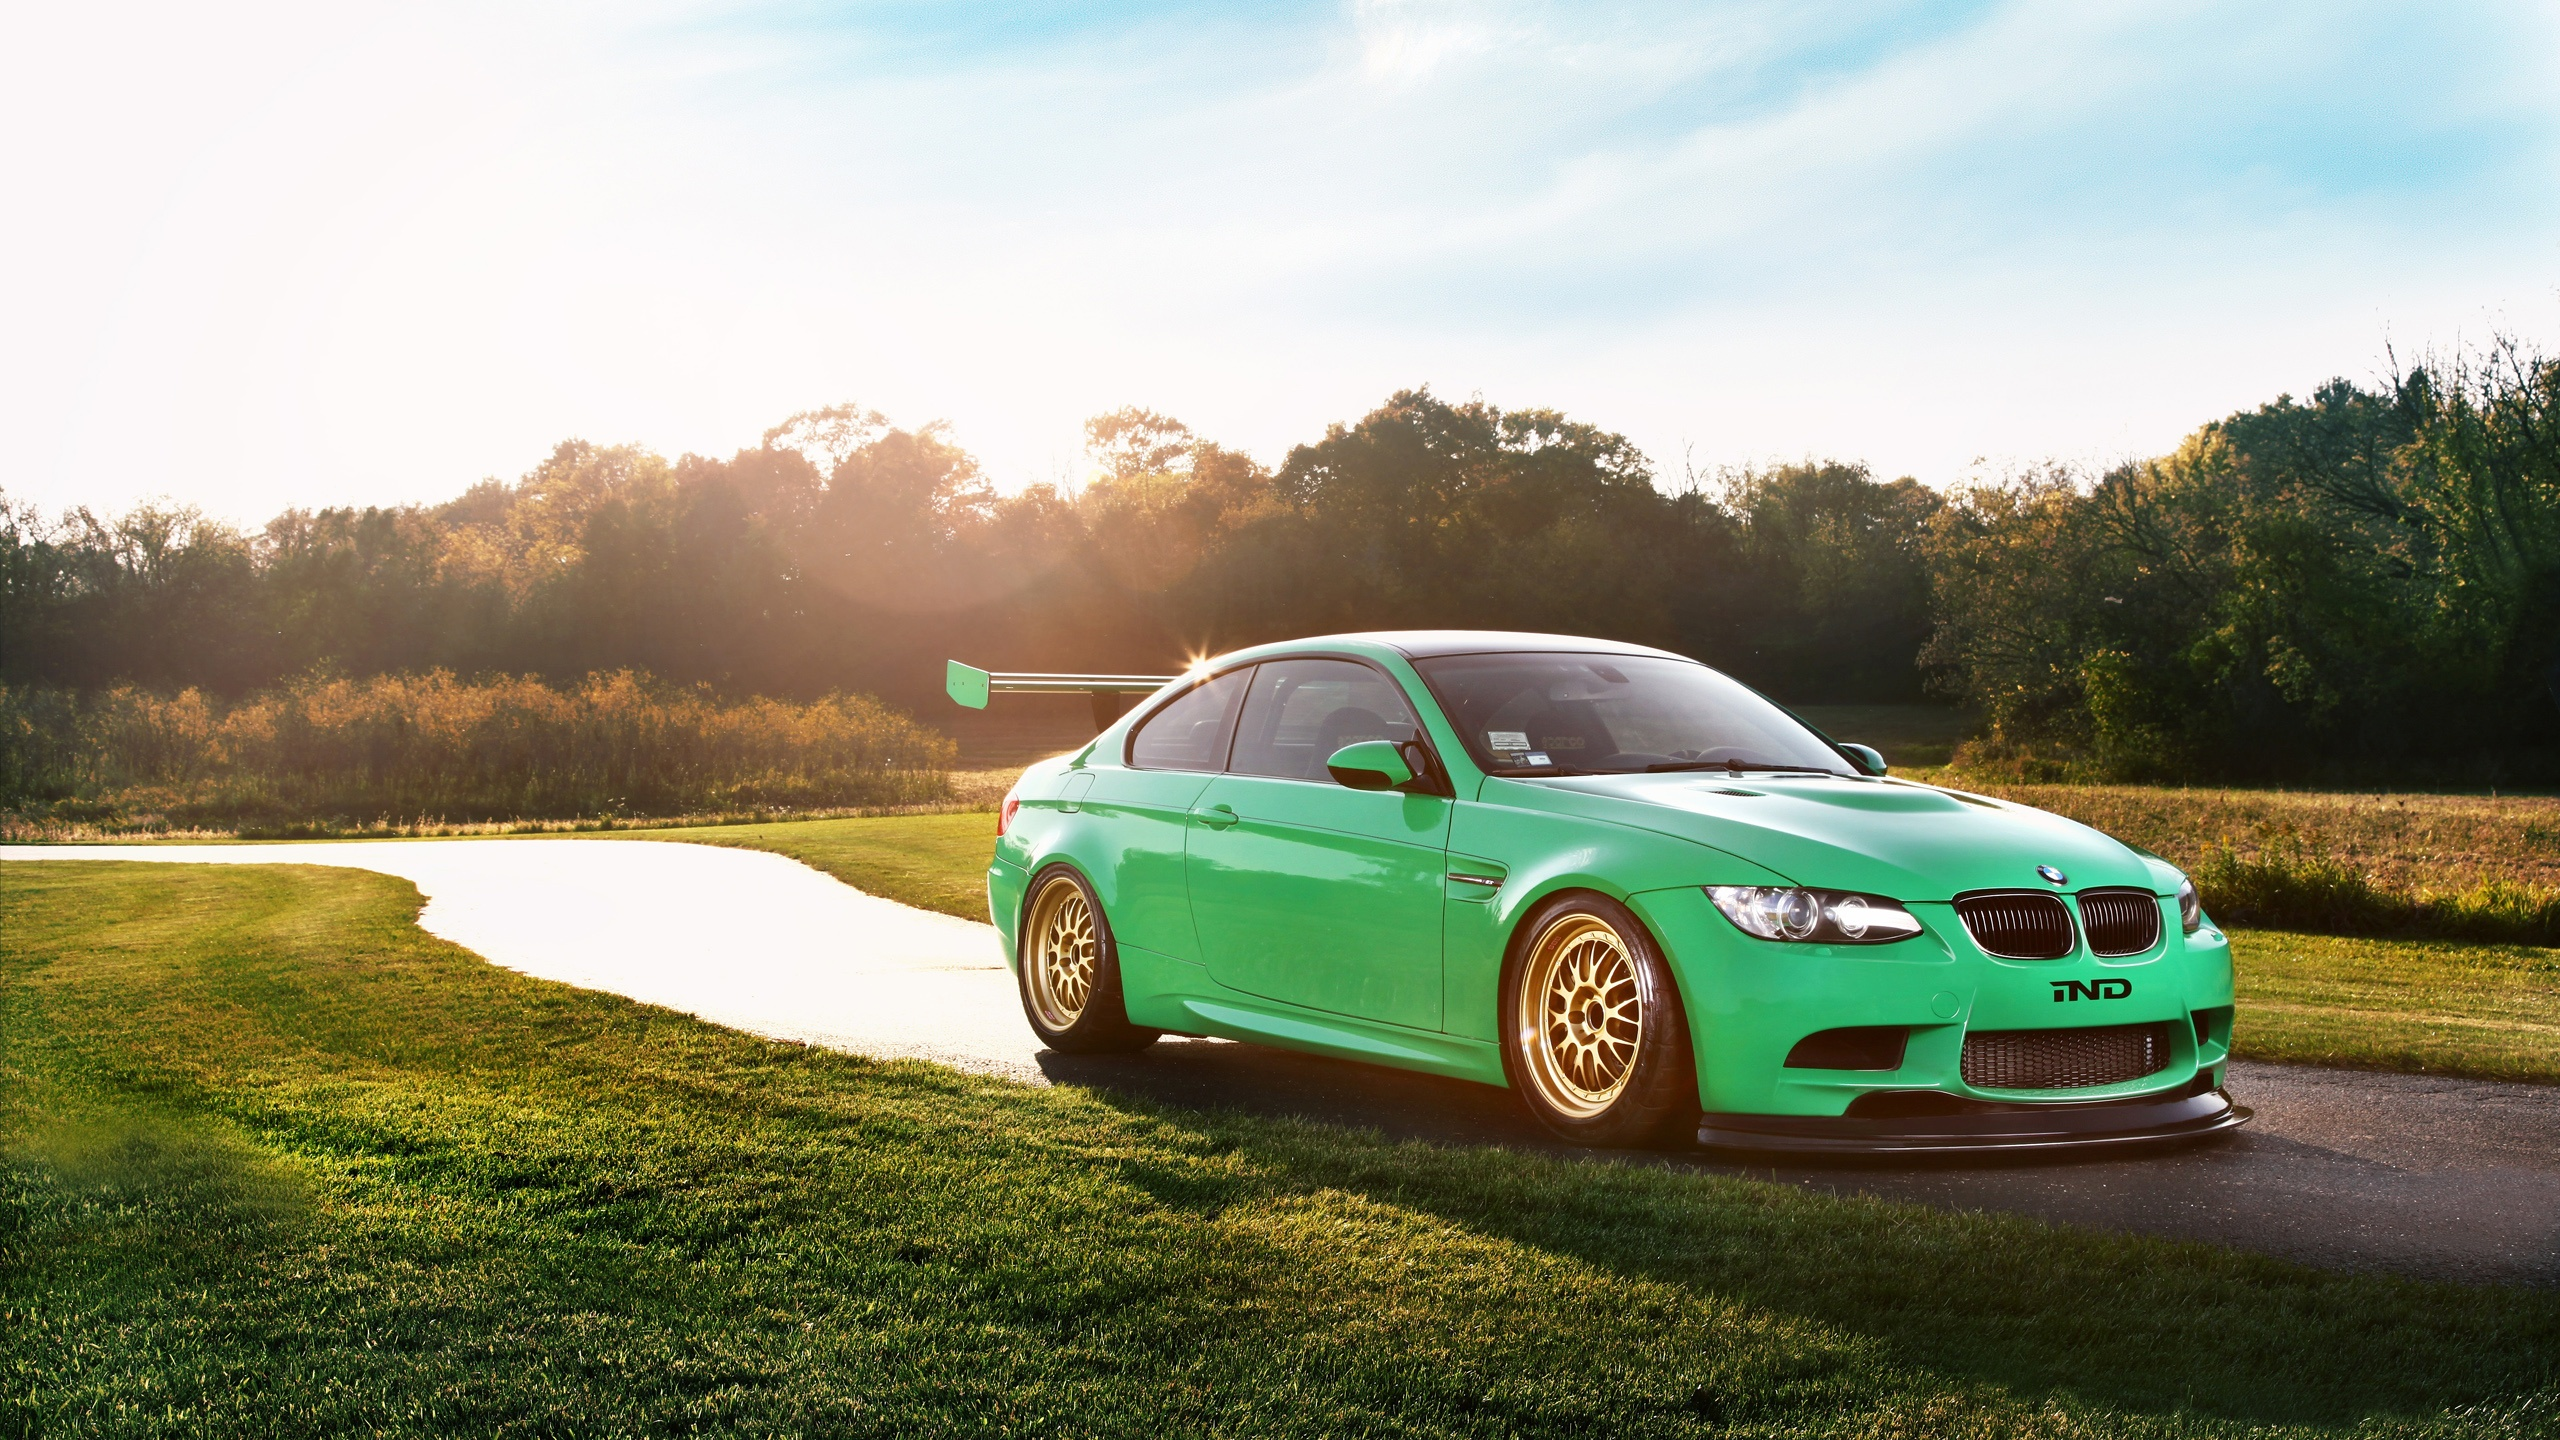 bmw m3 coupe green - photo #16